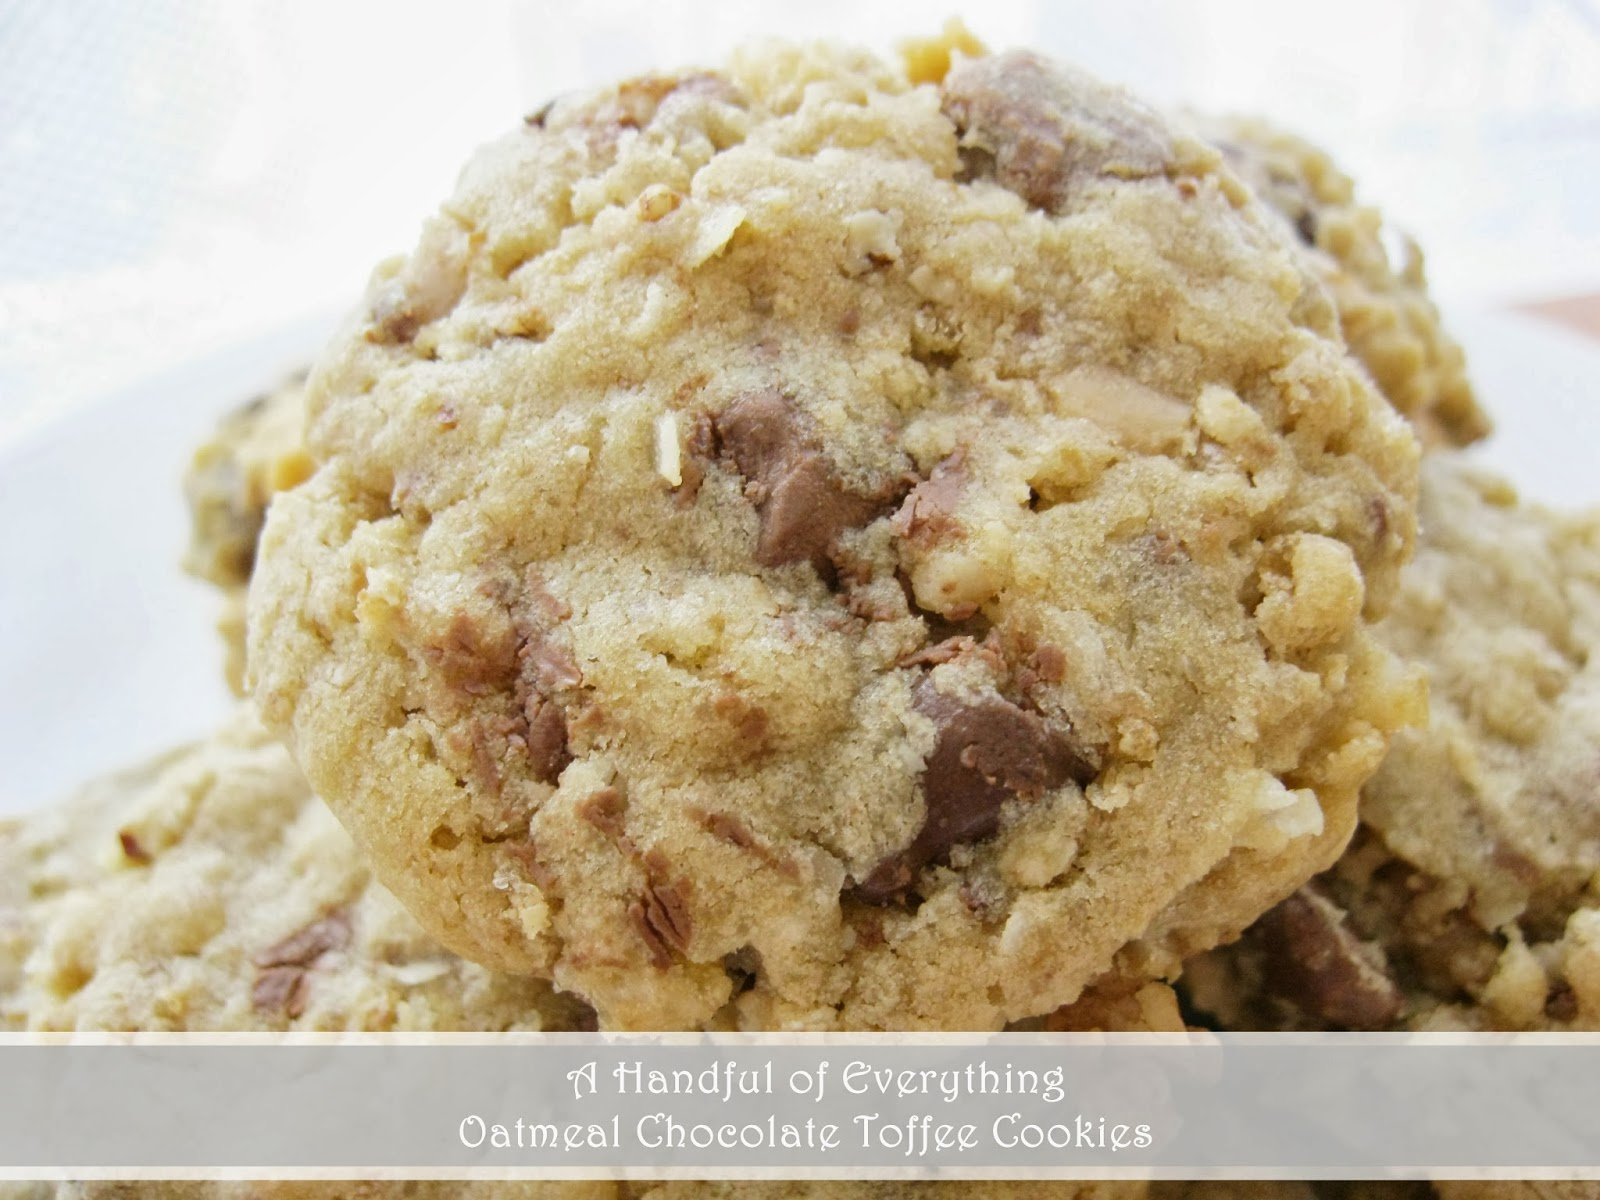 Handful of Everything: Oatmeal Chocolate Toffee Cookies